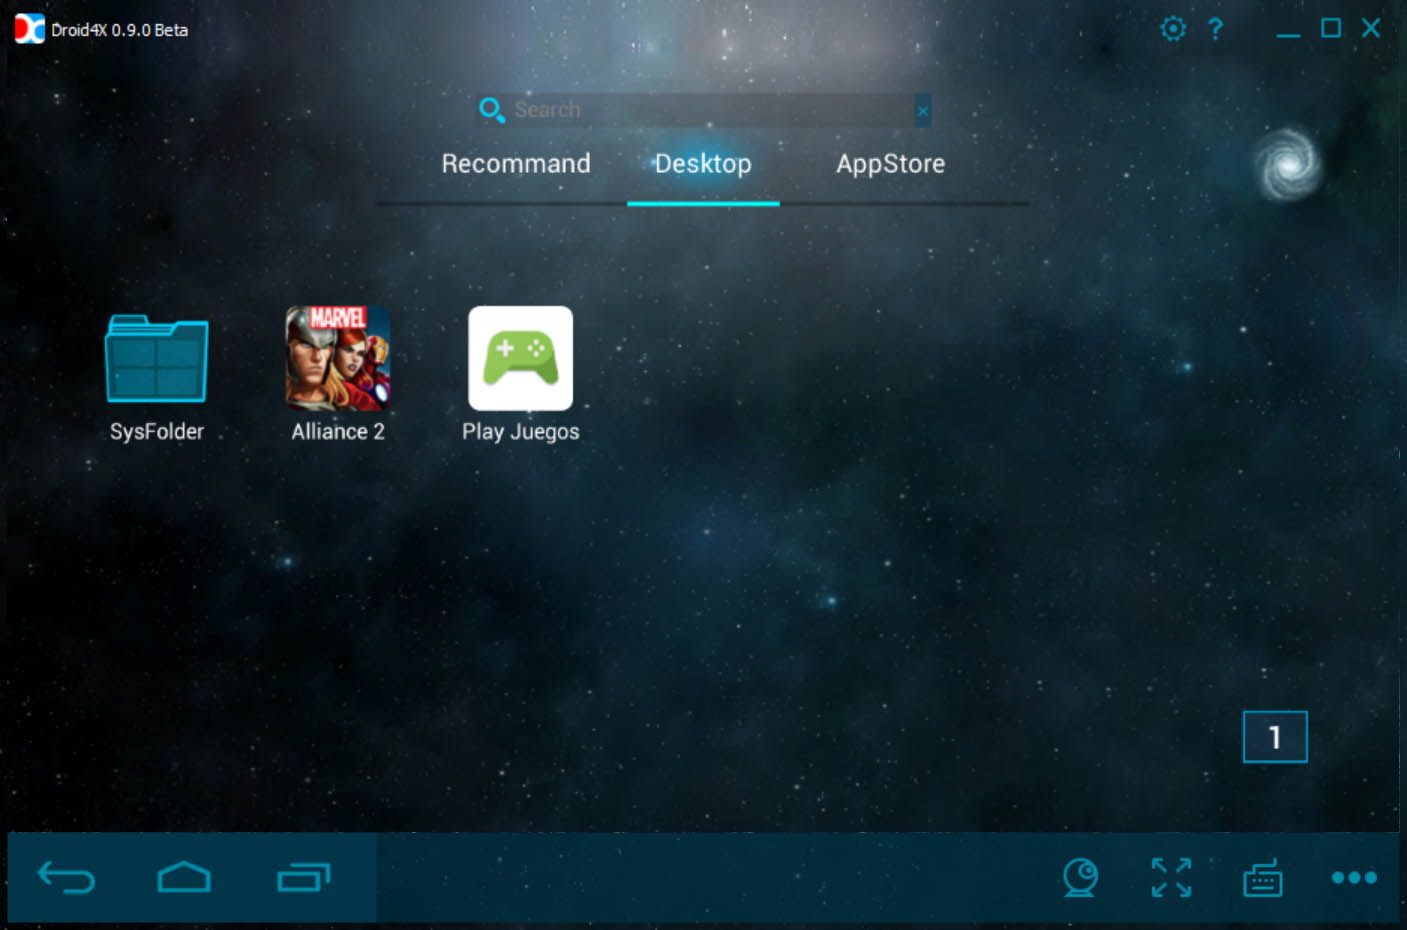 Droid4x main menu